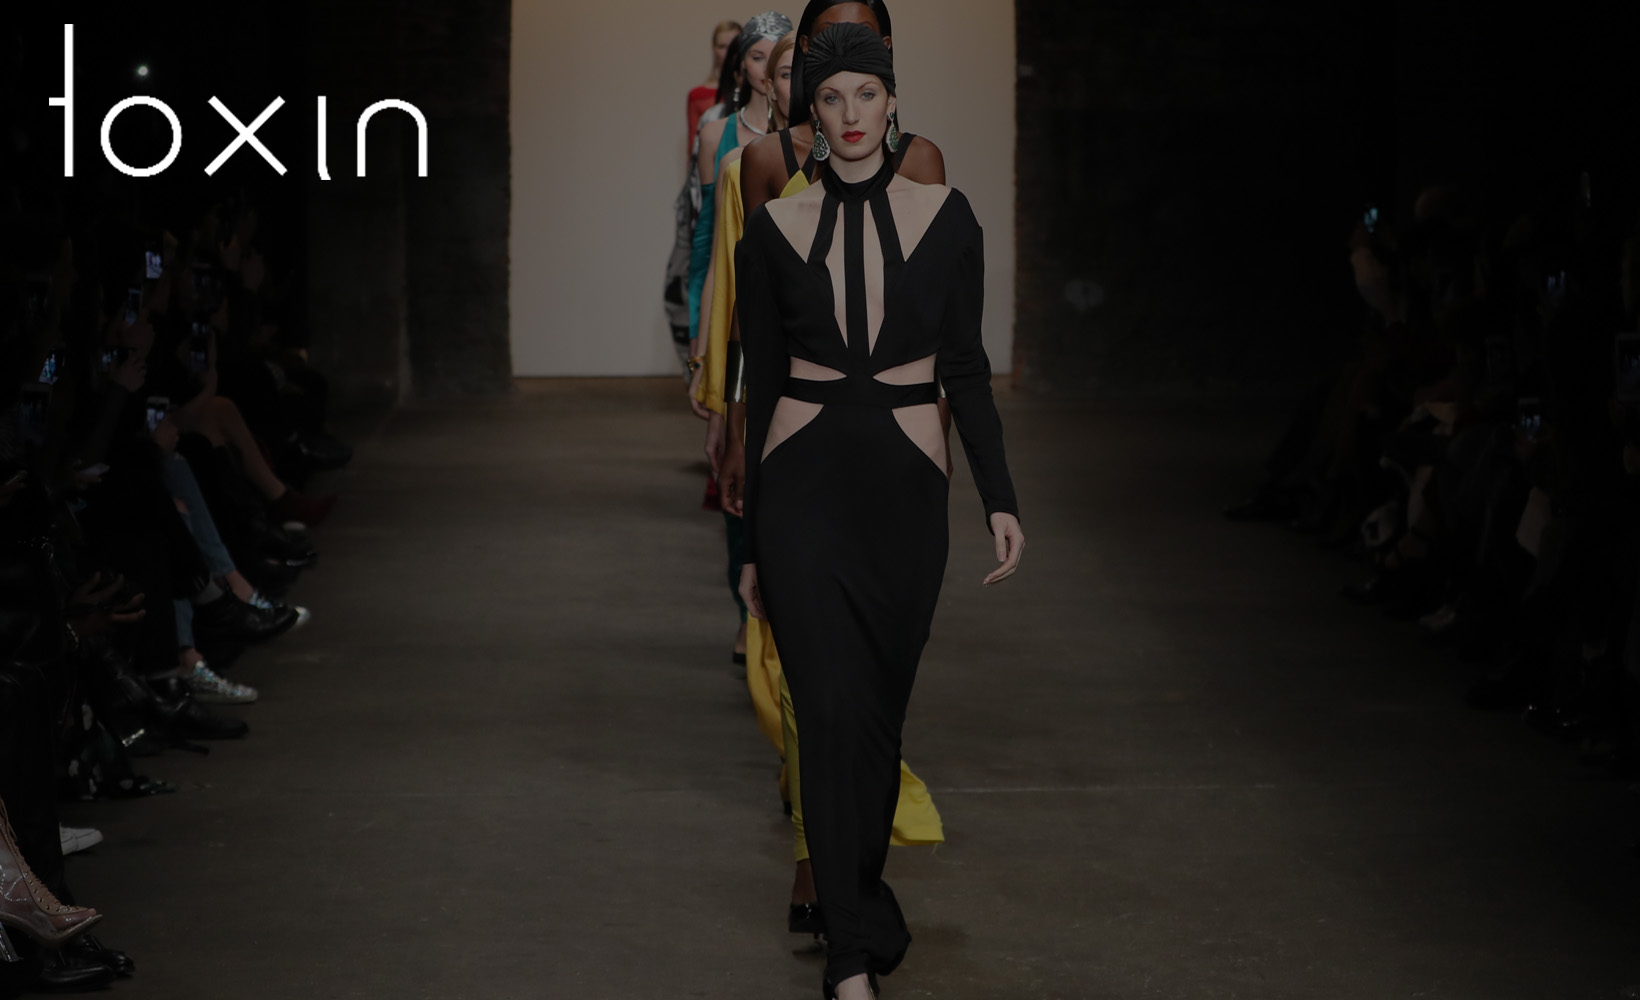 low priced 9bb53 7790c ... Toxin Magazine will be joining as an Official Media Partner for the  Nolcha Shows Spring Summer 2018 season taking place during New York Fashion  Week.